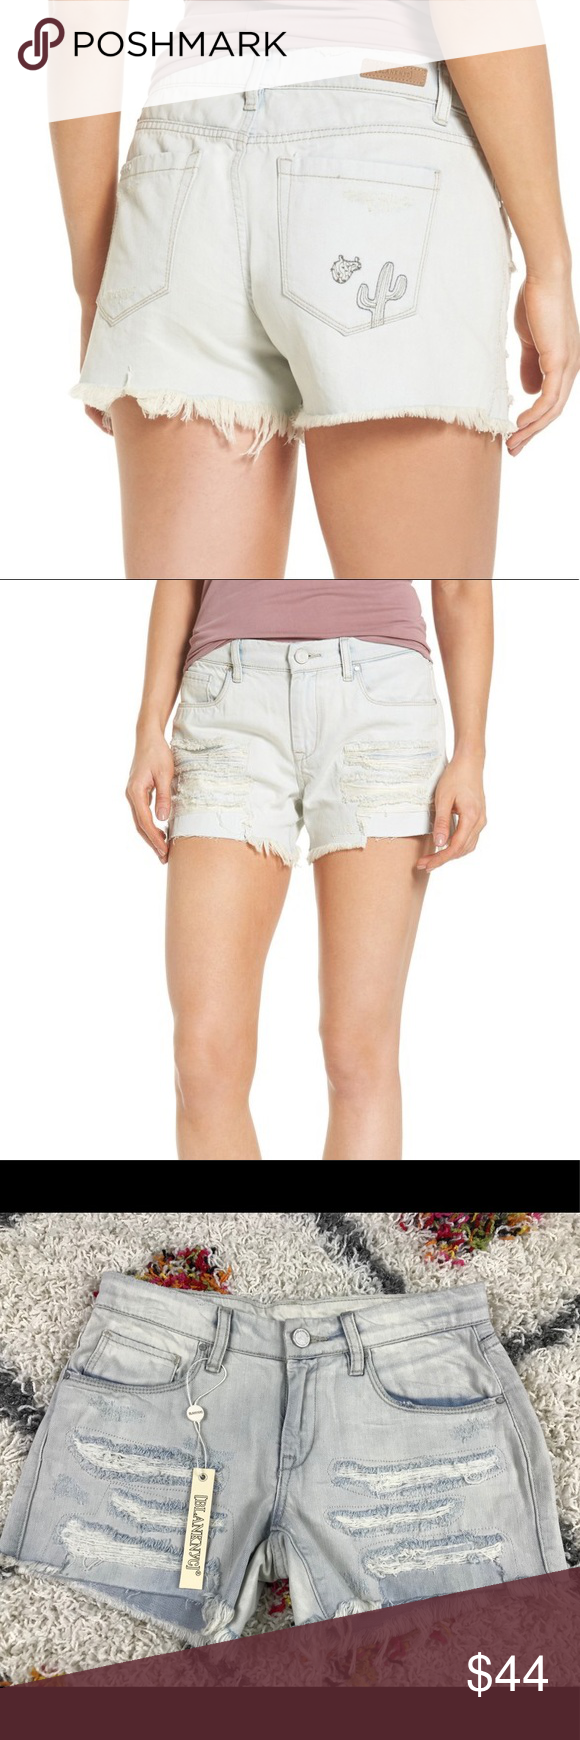 5d5745243022 Blank NYC embroidered cactus tomboy jean shorts 25 Brand new women's  BlankNYC tomboy sun baked cactus embroidered distressed jean shorts, size  25.